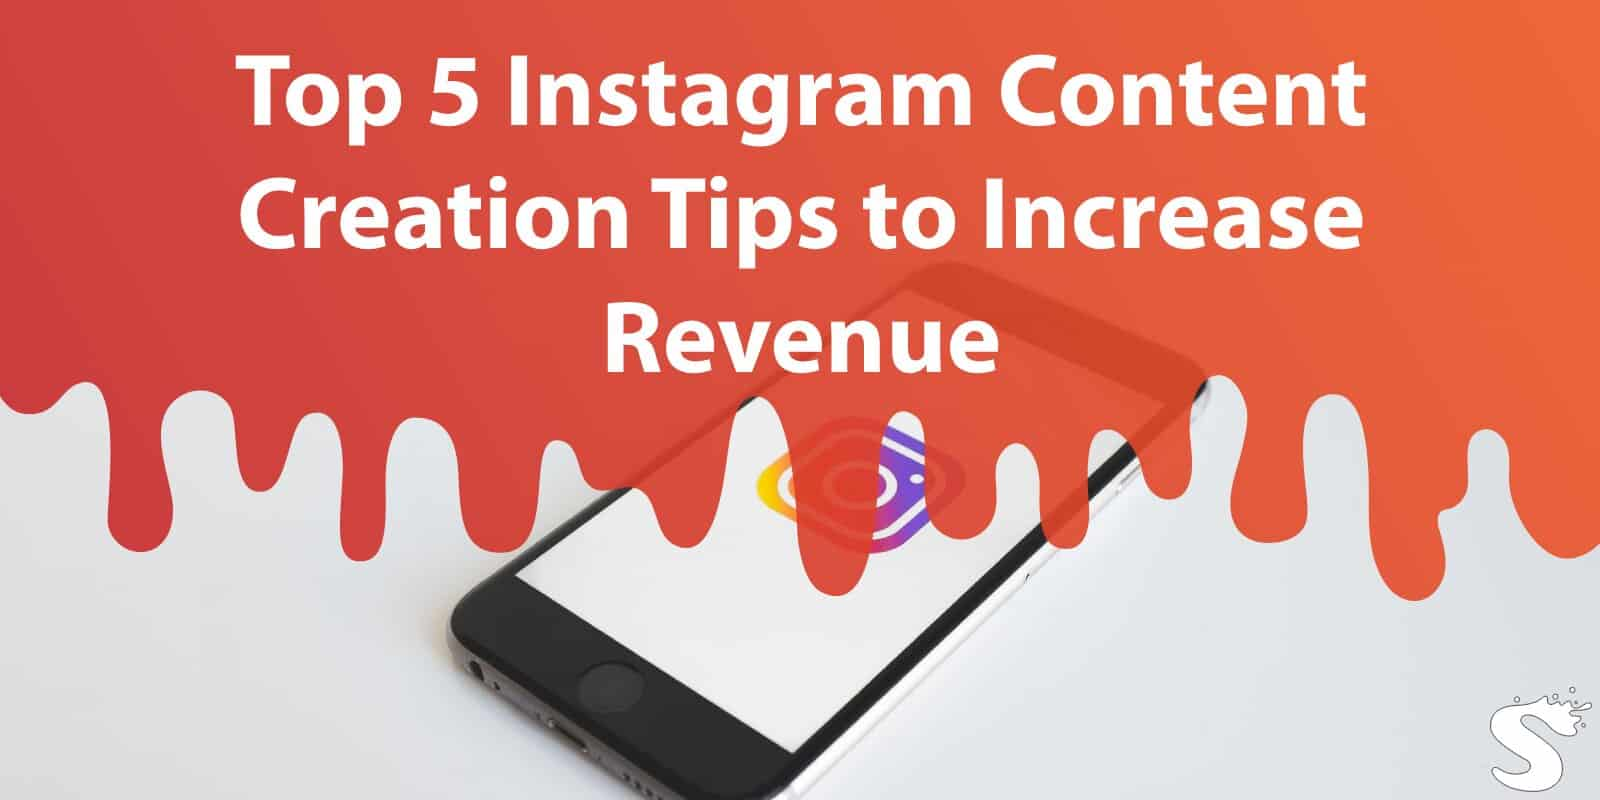 Top 5 Instagram Content Creation Tips to Increase Revenue